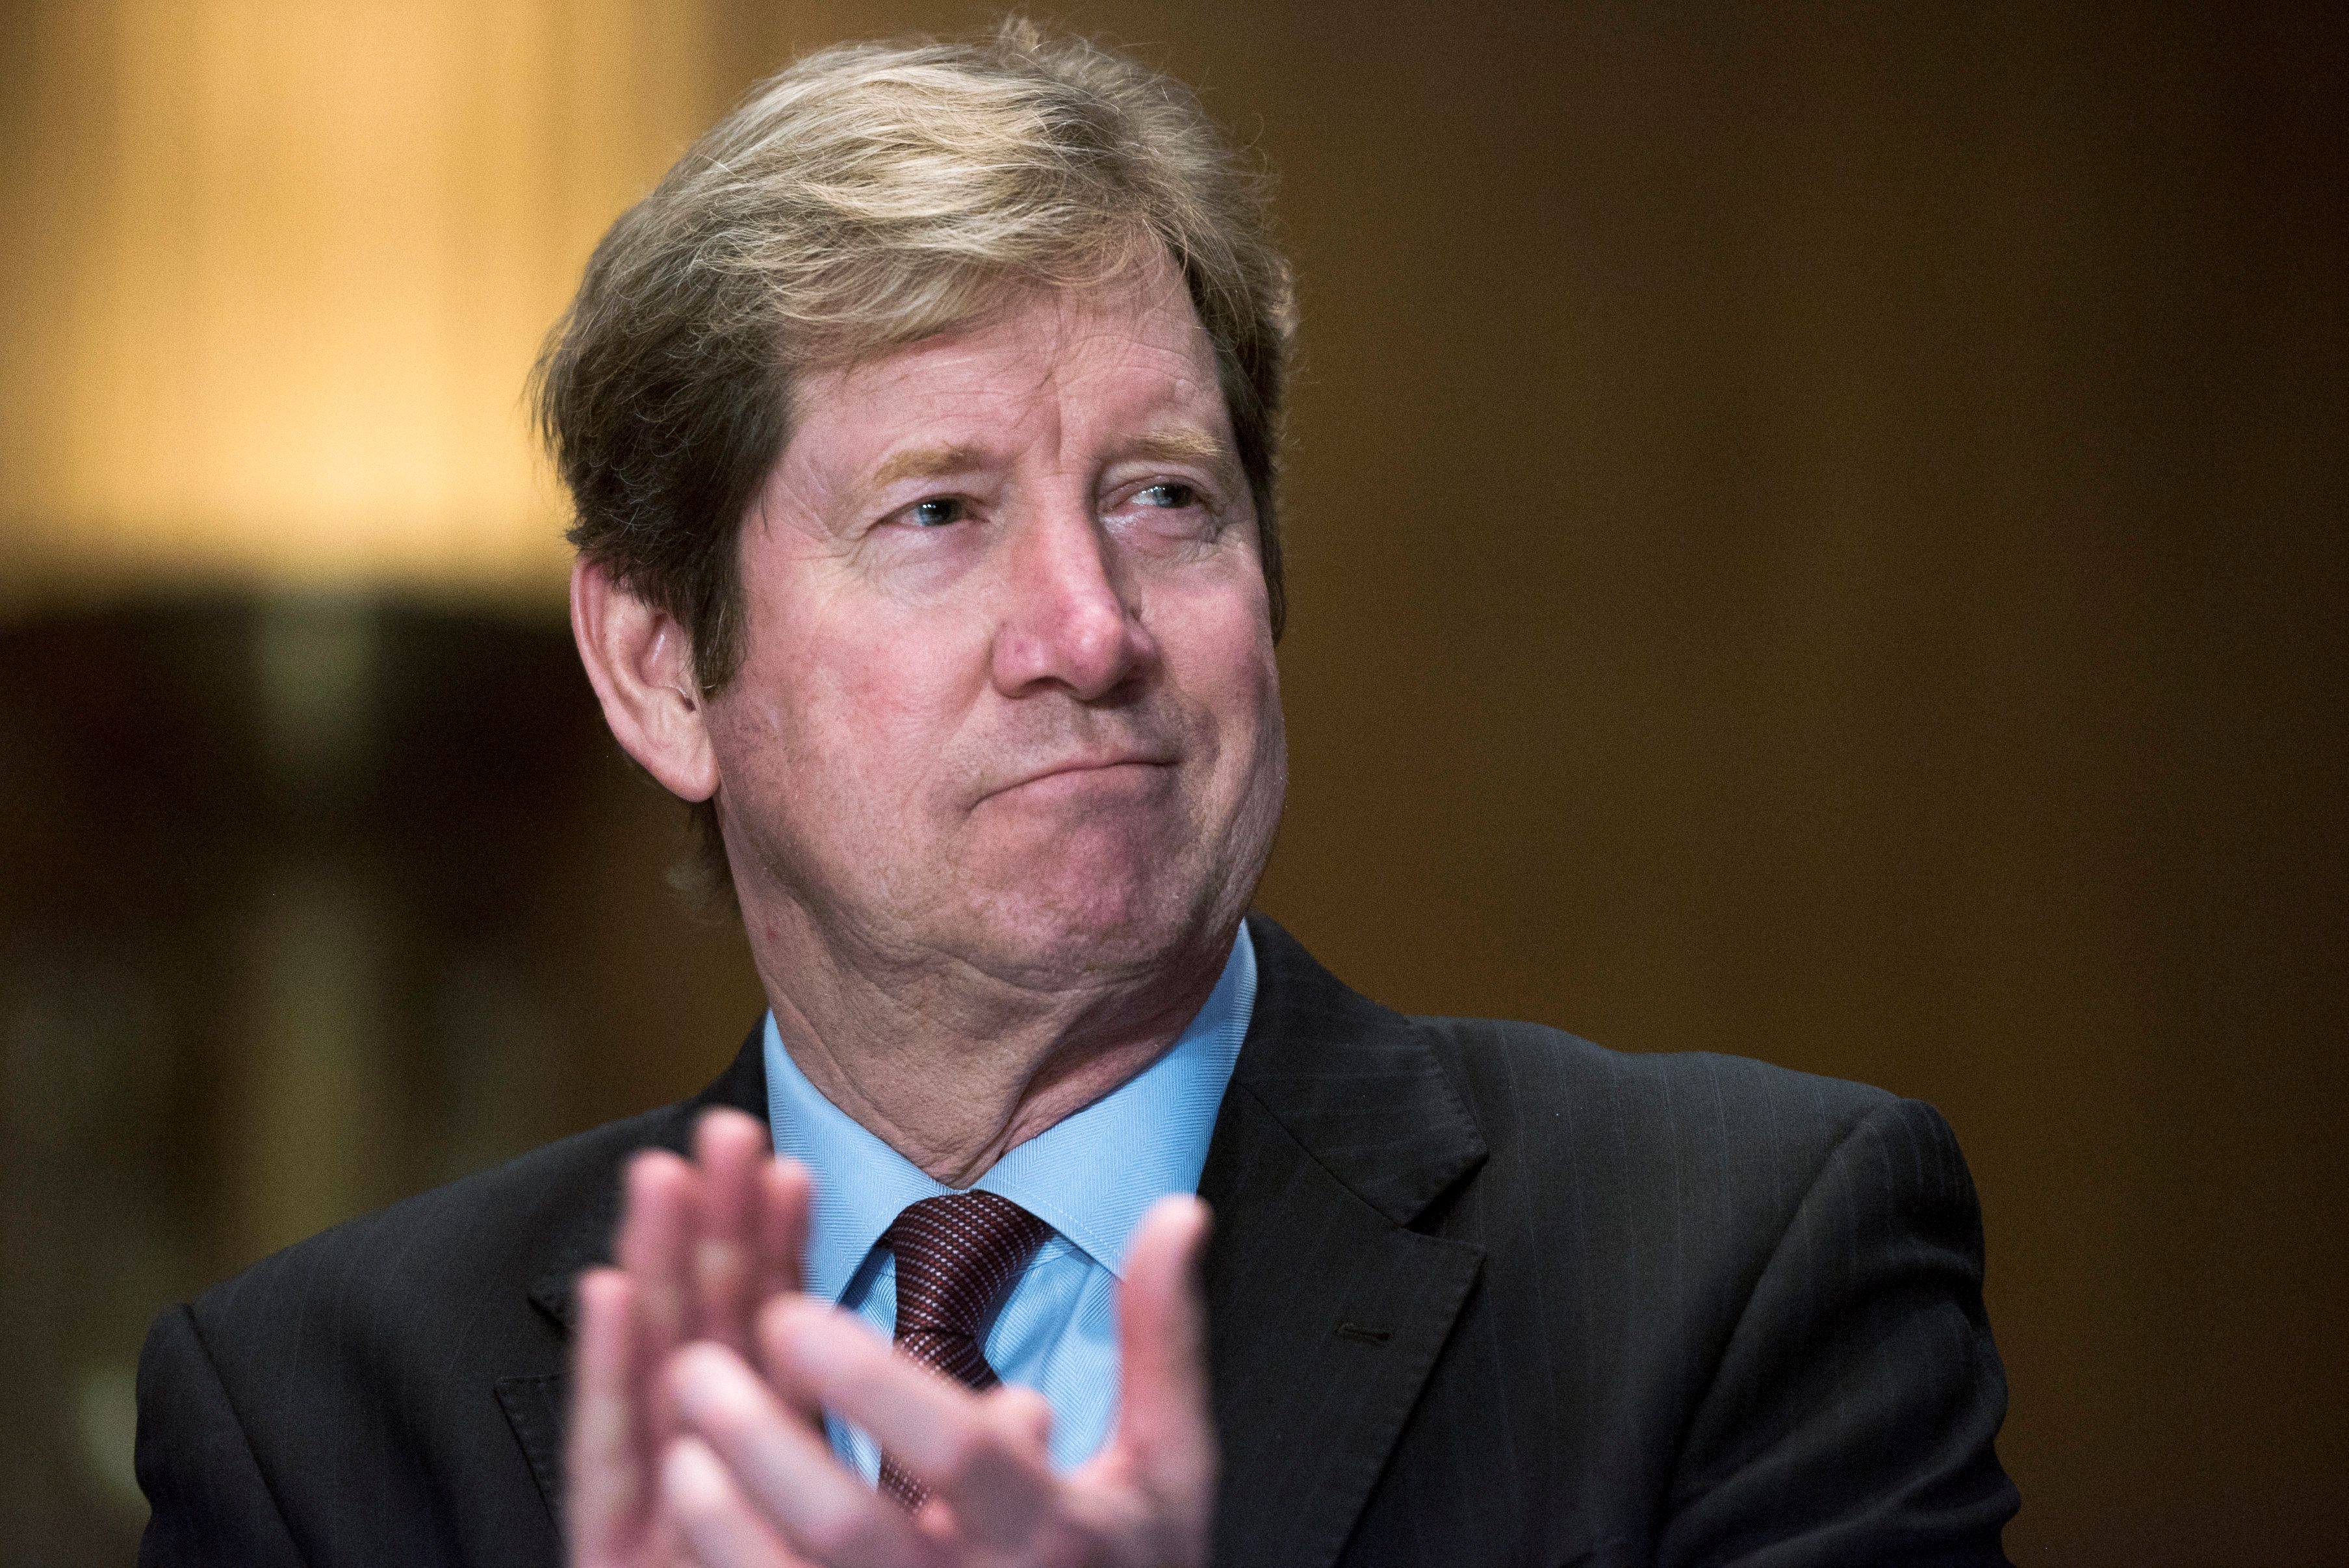 Rep. Jason Lewis (R-Minn.) attends the annual Minnesota Congressional Delegation Hotdish Competition on March 8, 2017.